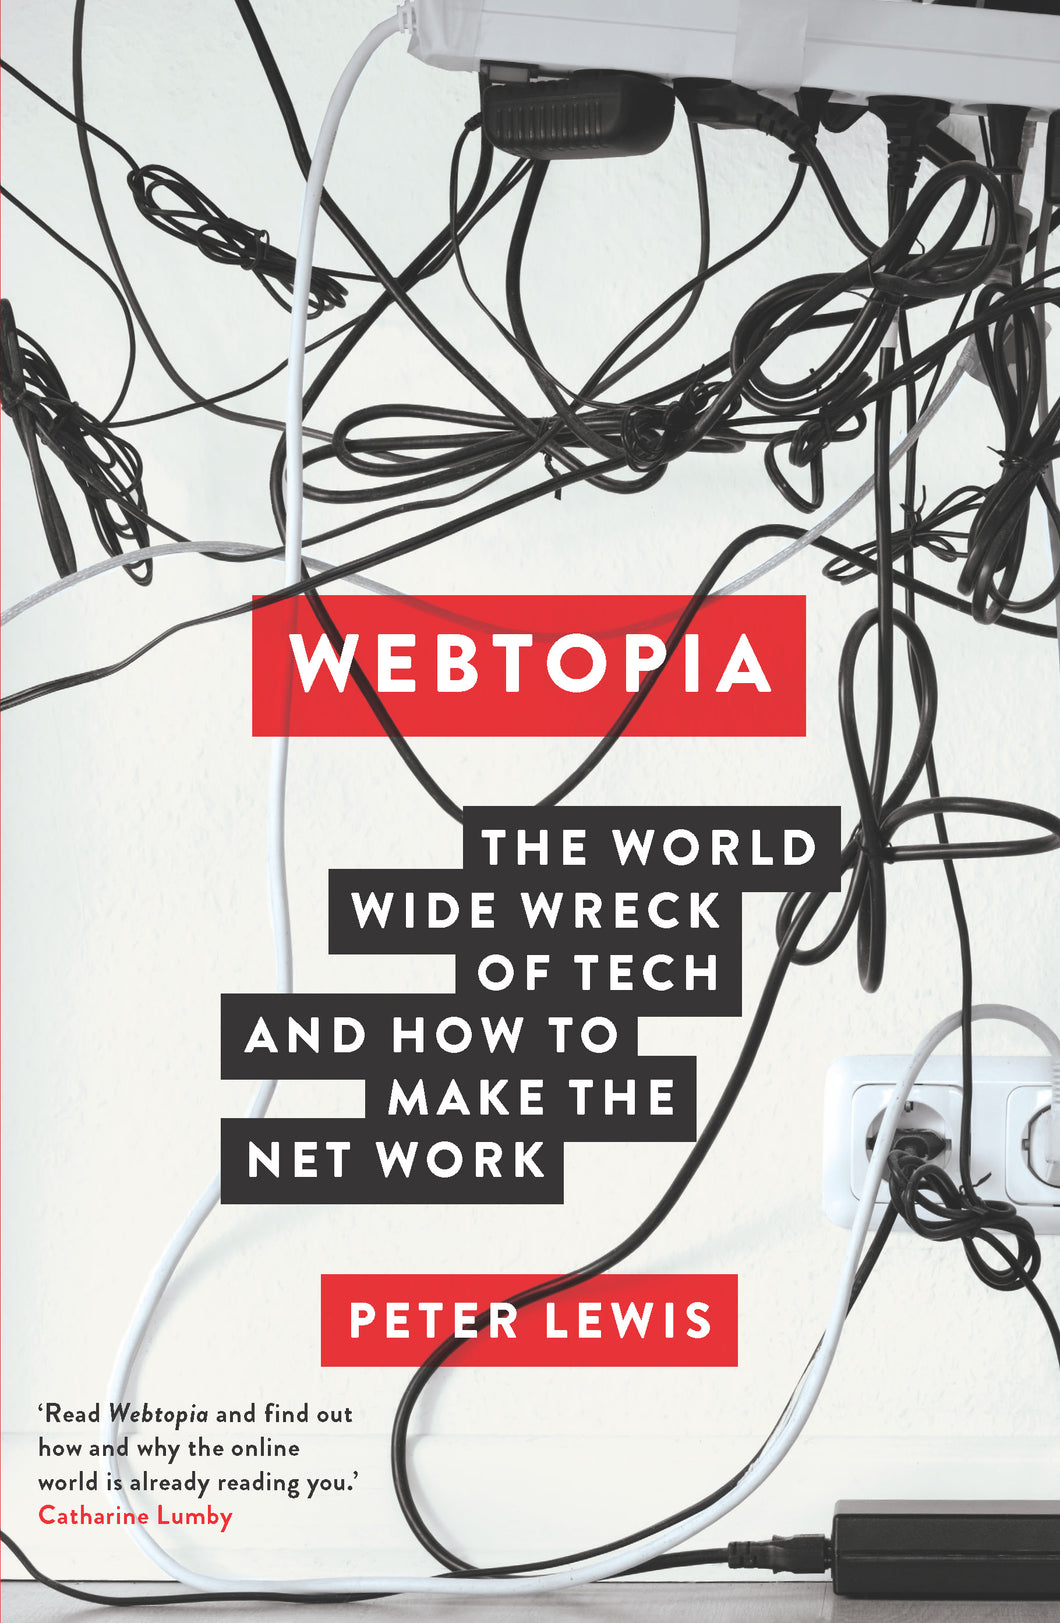 Webtopia-The world wide wreck of tech and how to make the net work